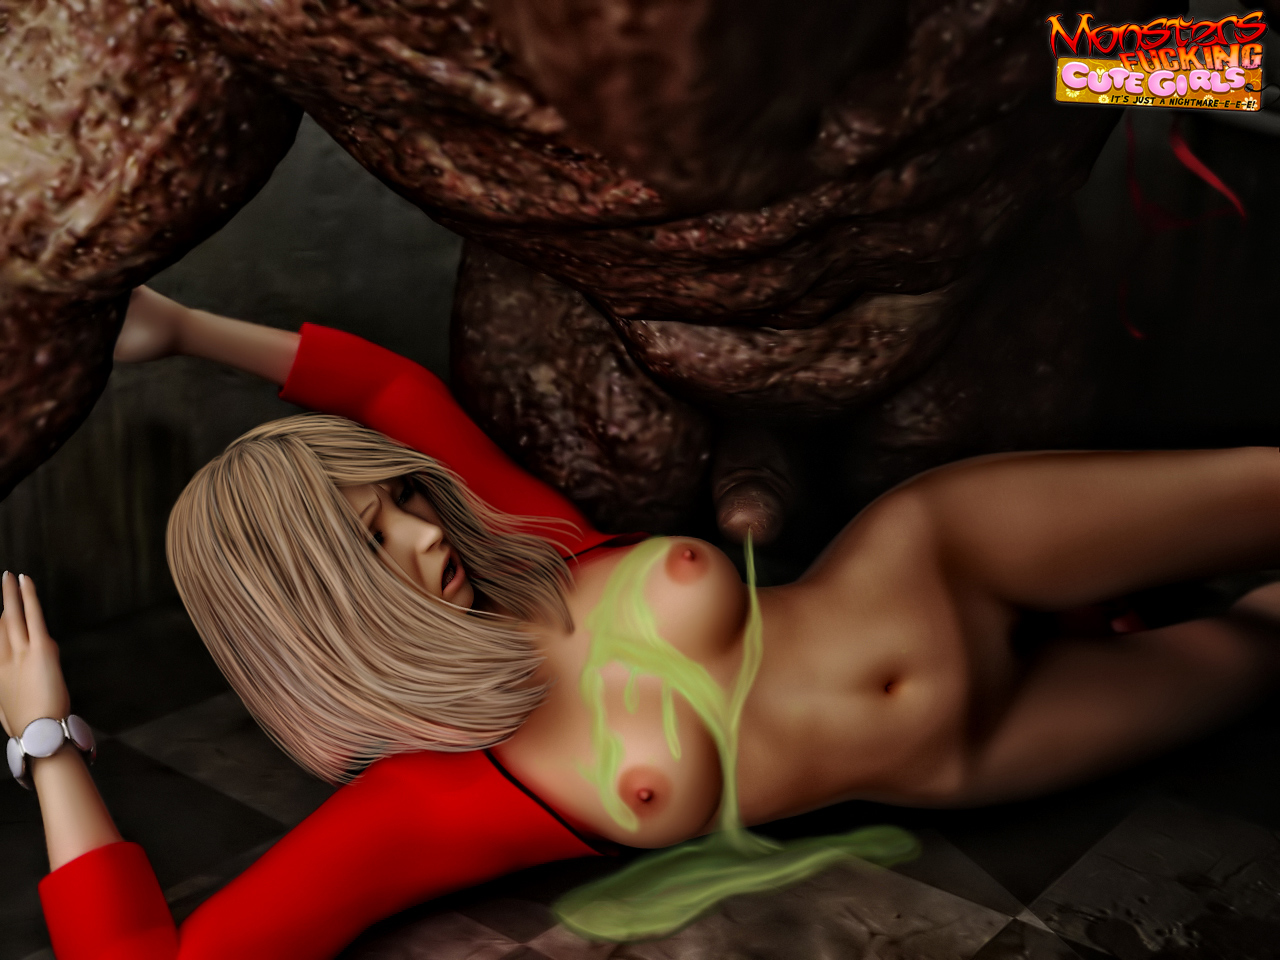 Monster fuck girls stories sexy images